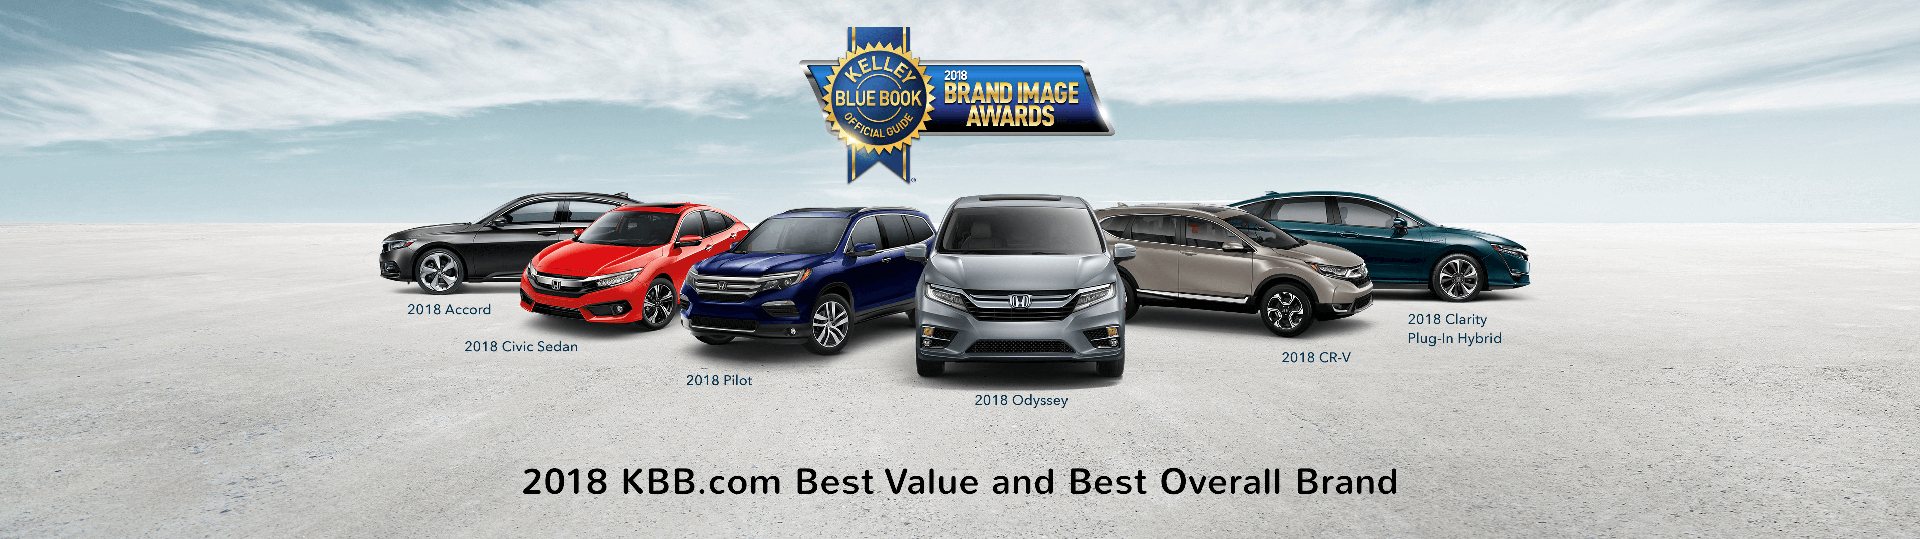 Honda KBB Awards Slider